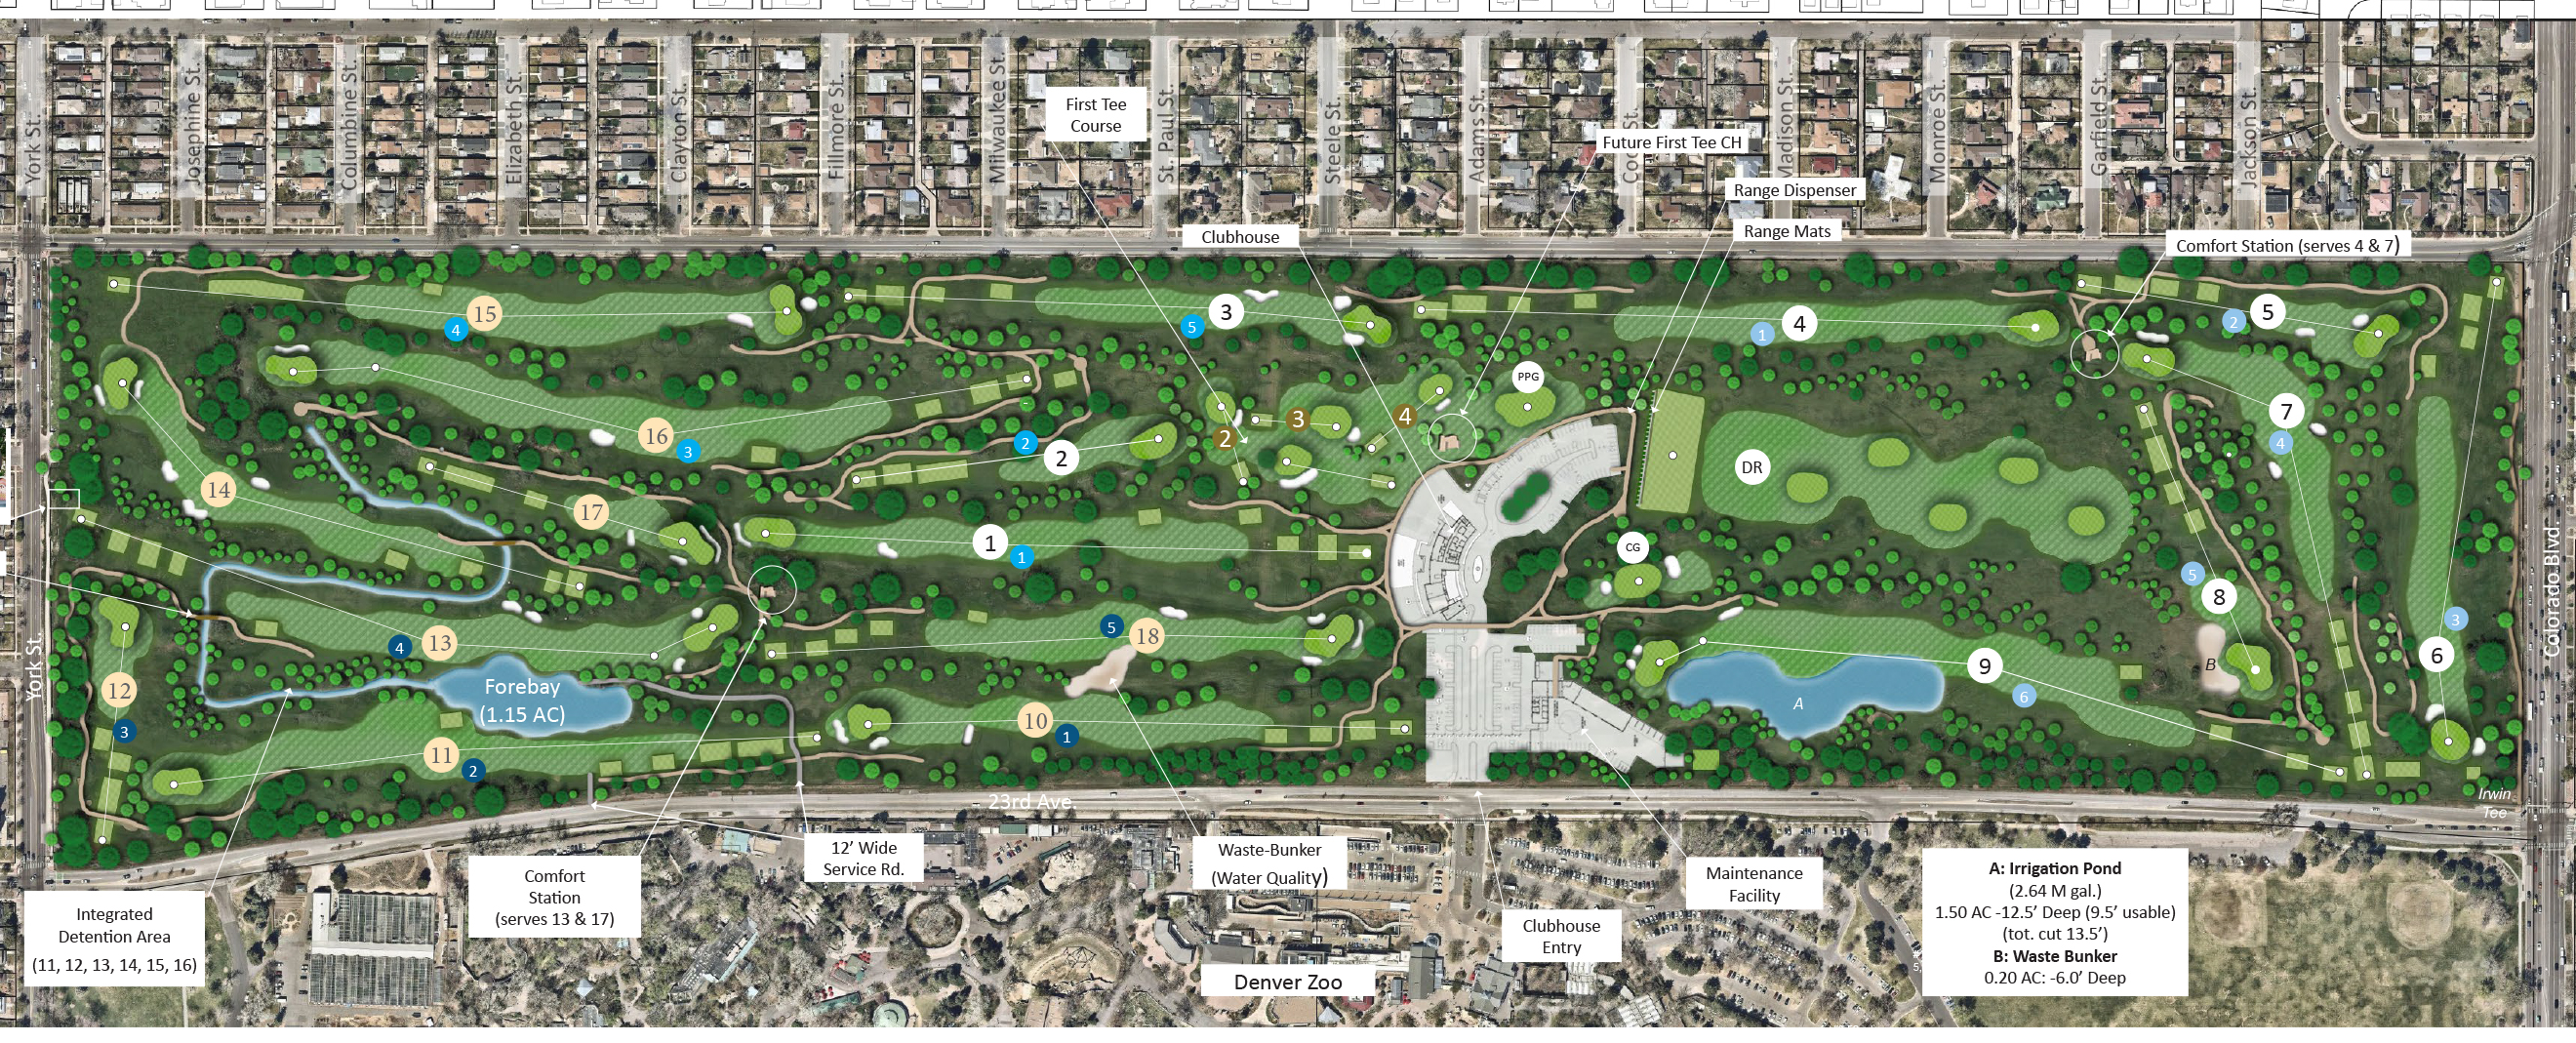 proposed map of new golf course holes and amenities